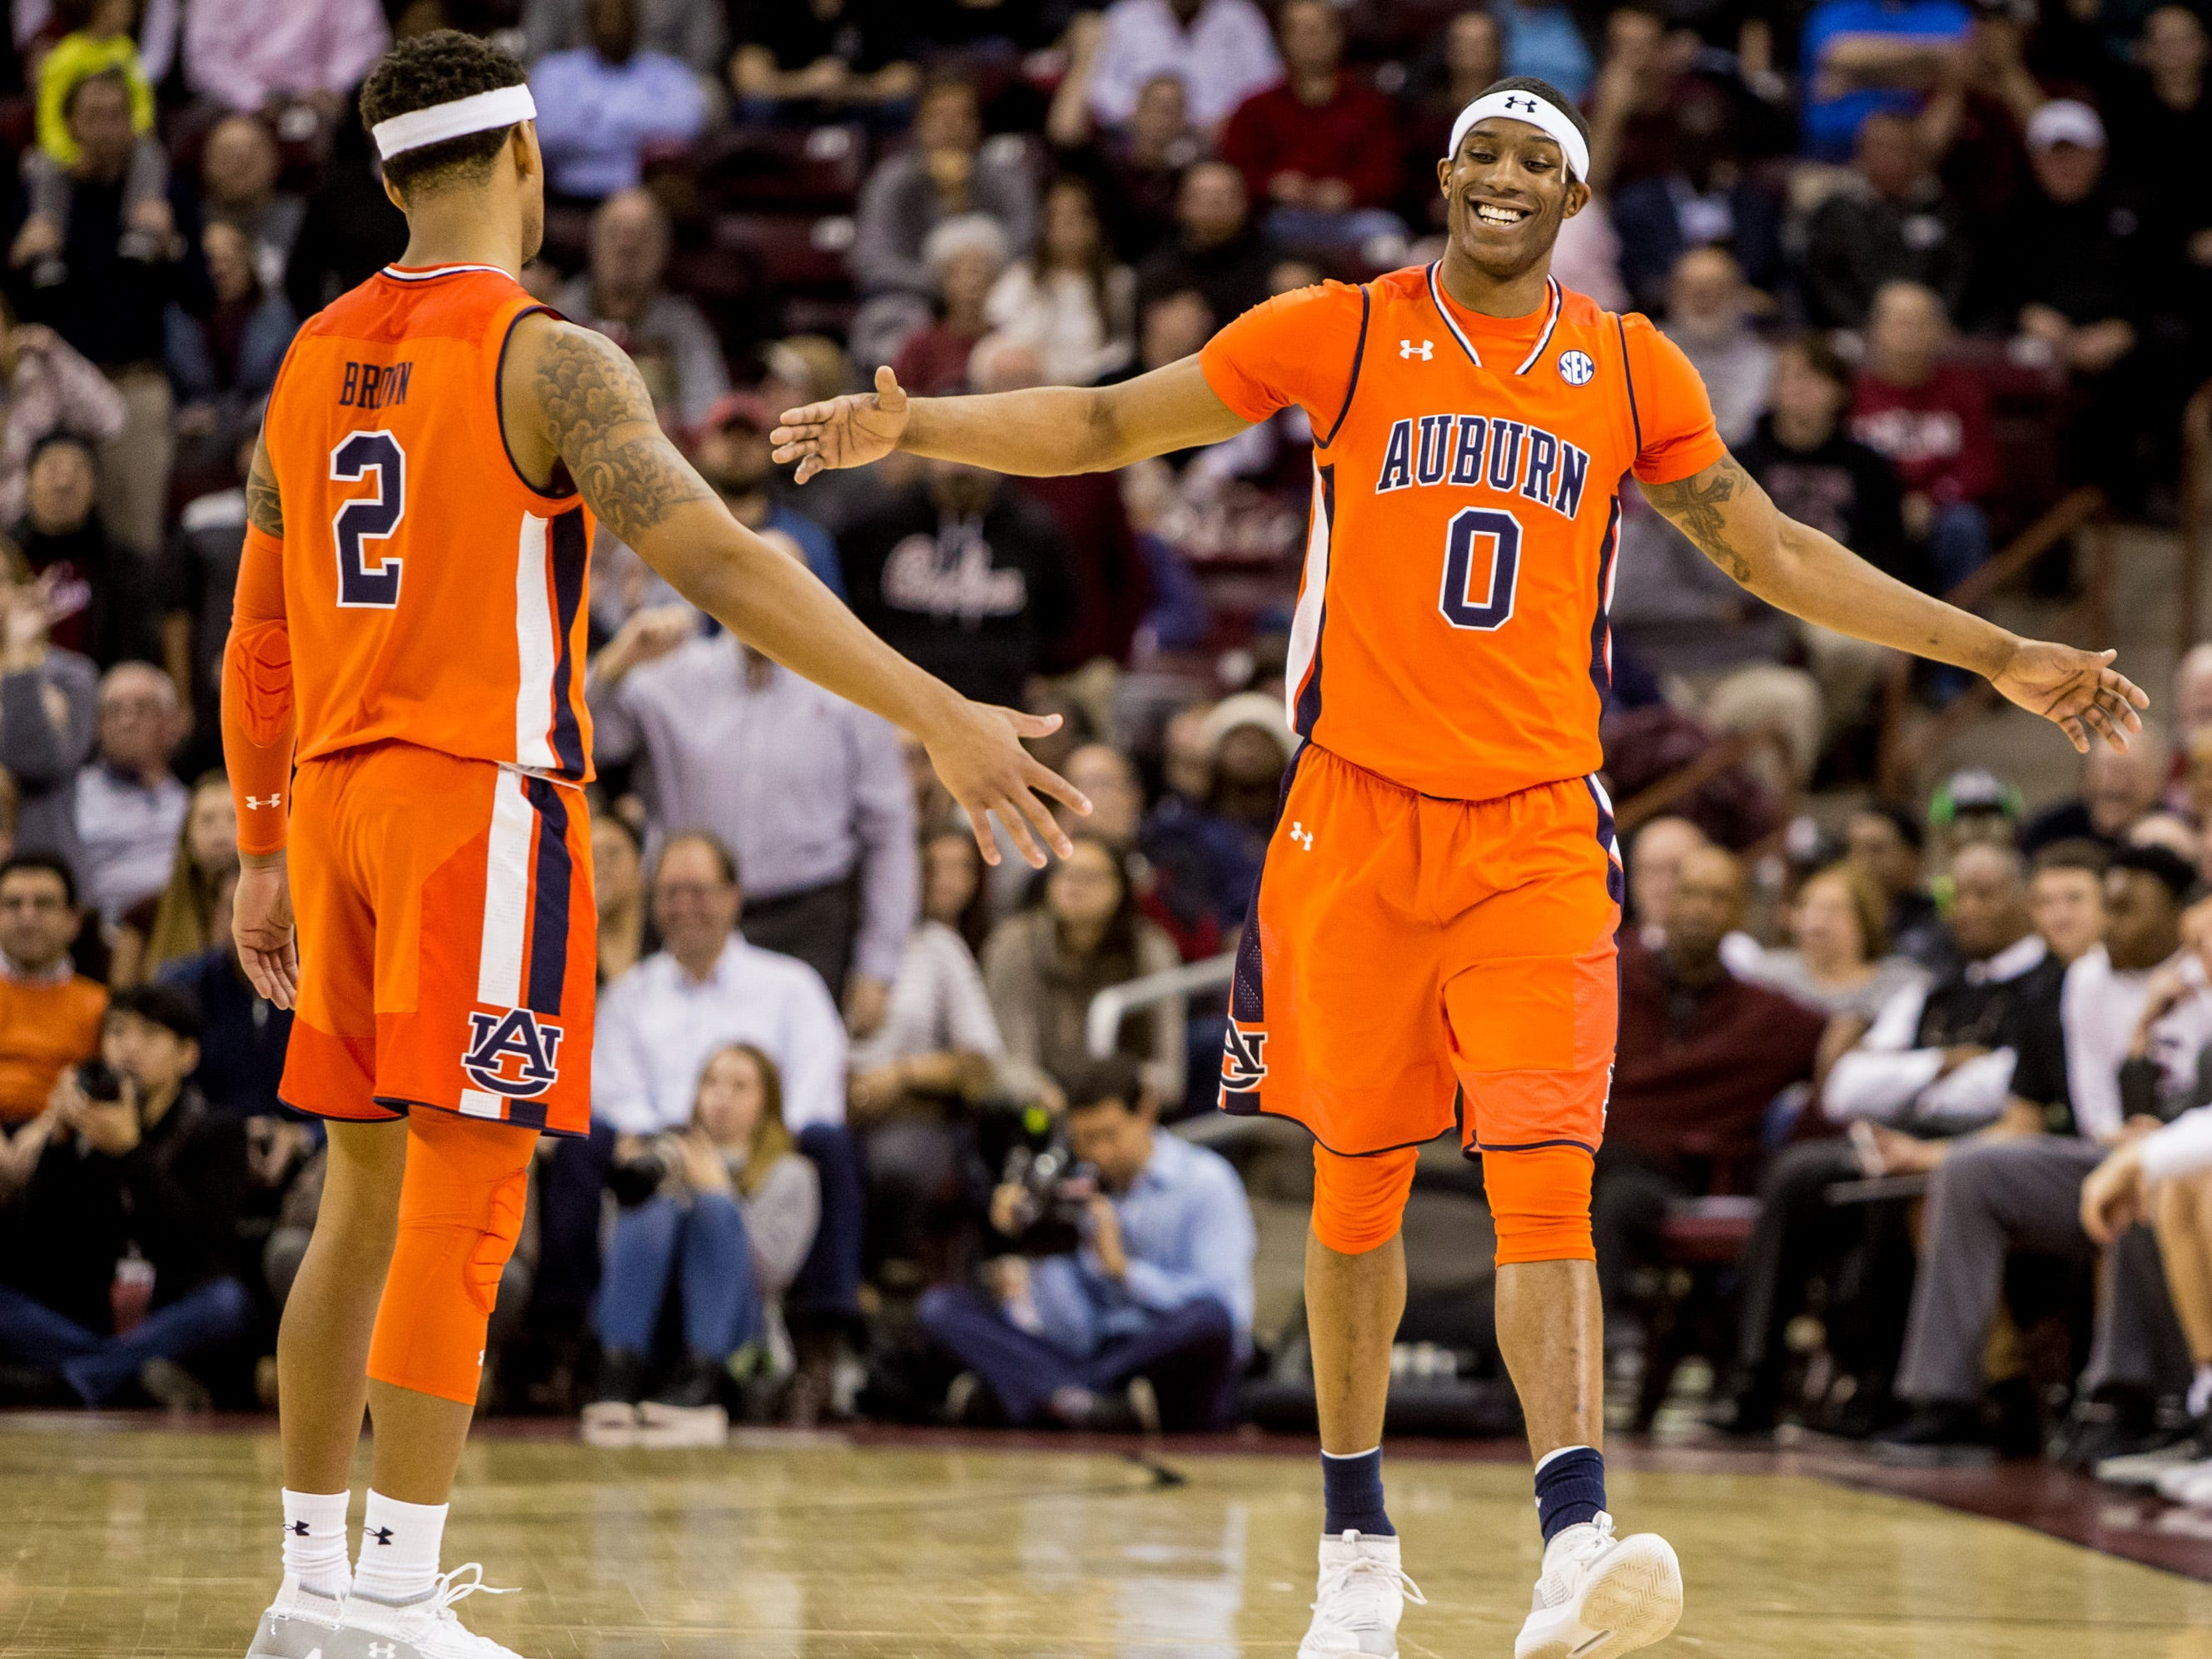 Jan 22, 2019; Columbia, SC, USA; Auburn Tigers forward Horace Spencer (0) smiles with guard Bryce Brown (2) after fouling out against the South Carolina Gamecocks in the second half at Colonial Life Arena. South Carolina won 80-77. Mandatory Credit: Jeff Blake-USA TODAY Sports